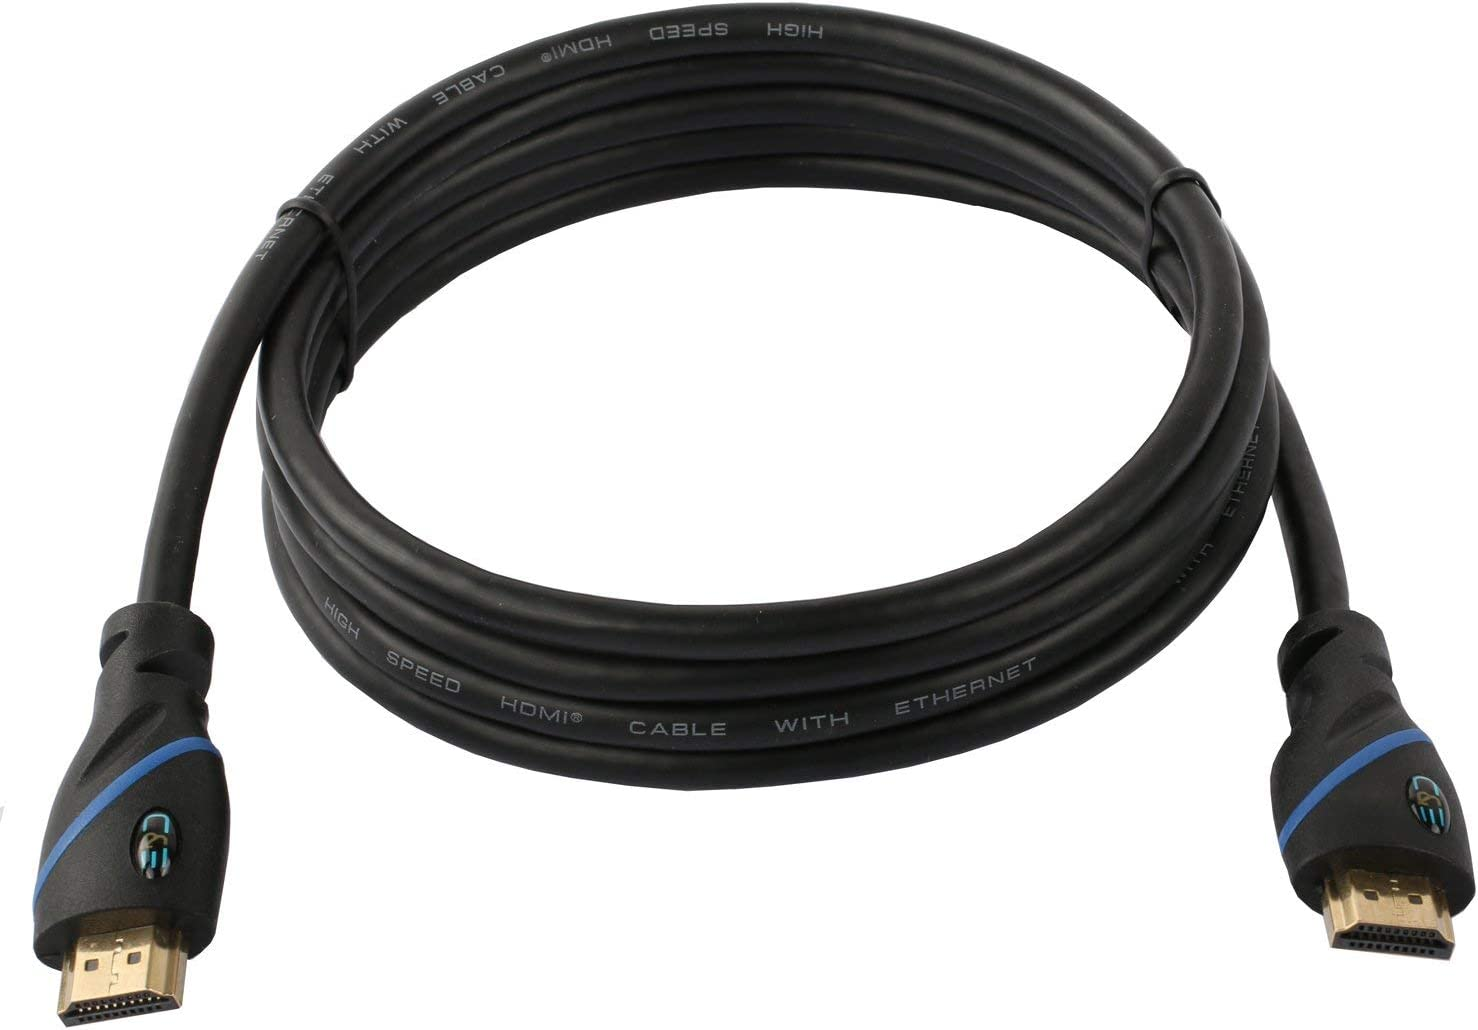 3D 12.2M 40ft Supports 4K 30Hz 40 Feet//12.2 Meters High Speed HDMI Cable Male to Female with Ethernet Black 1080p and Audio Return CNE571256